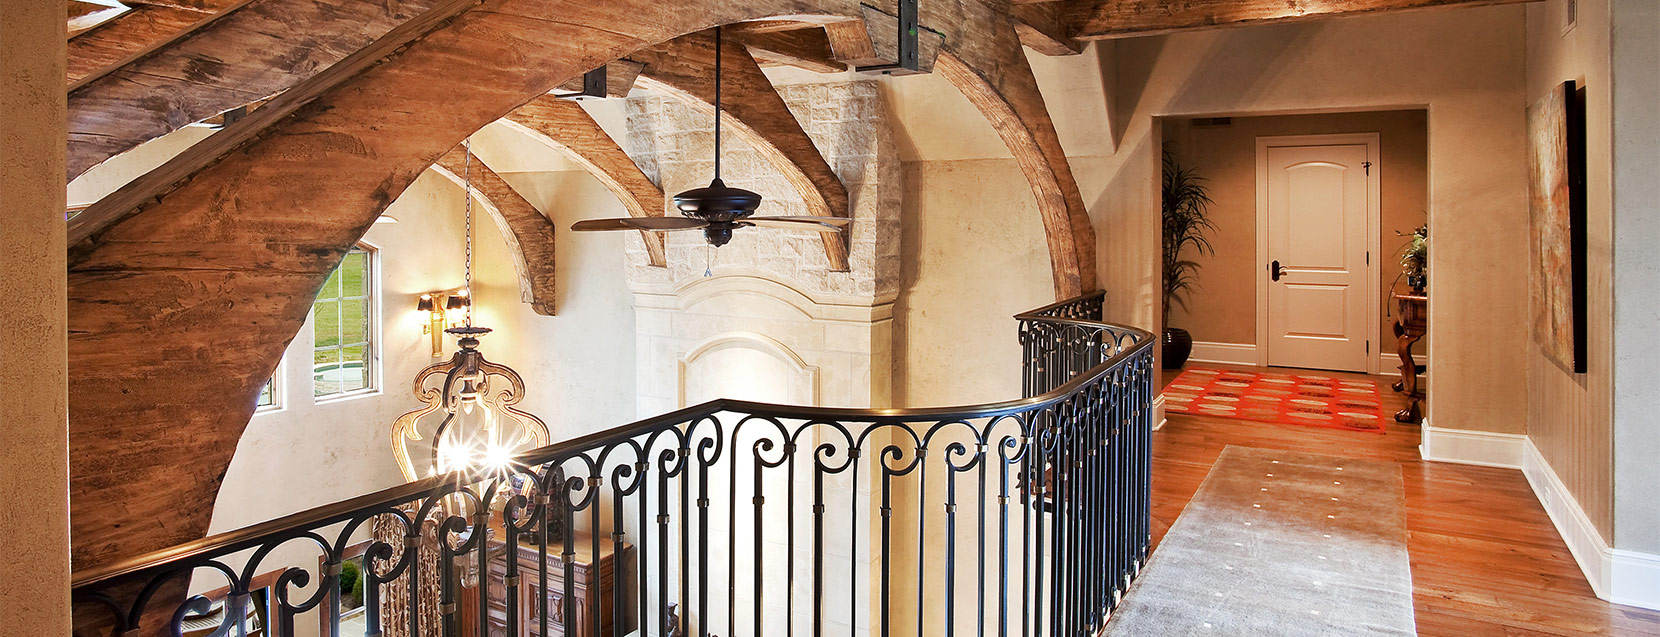 Custom Homes and Home Remodeling | Holthaus Building, Inc.